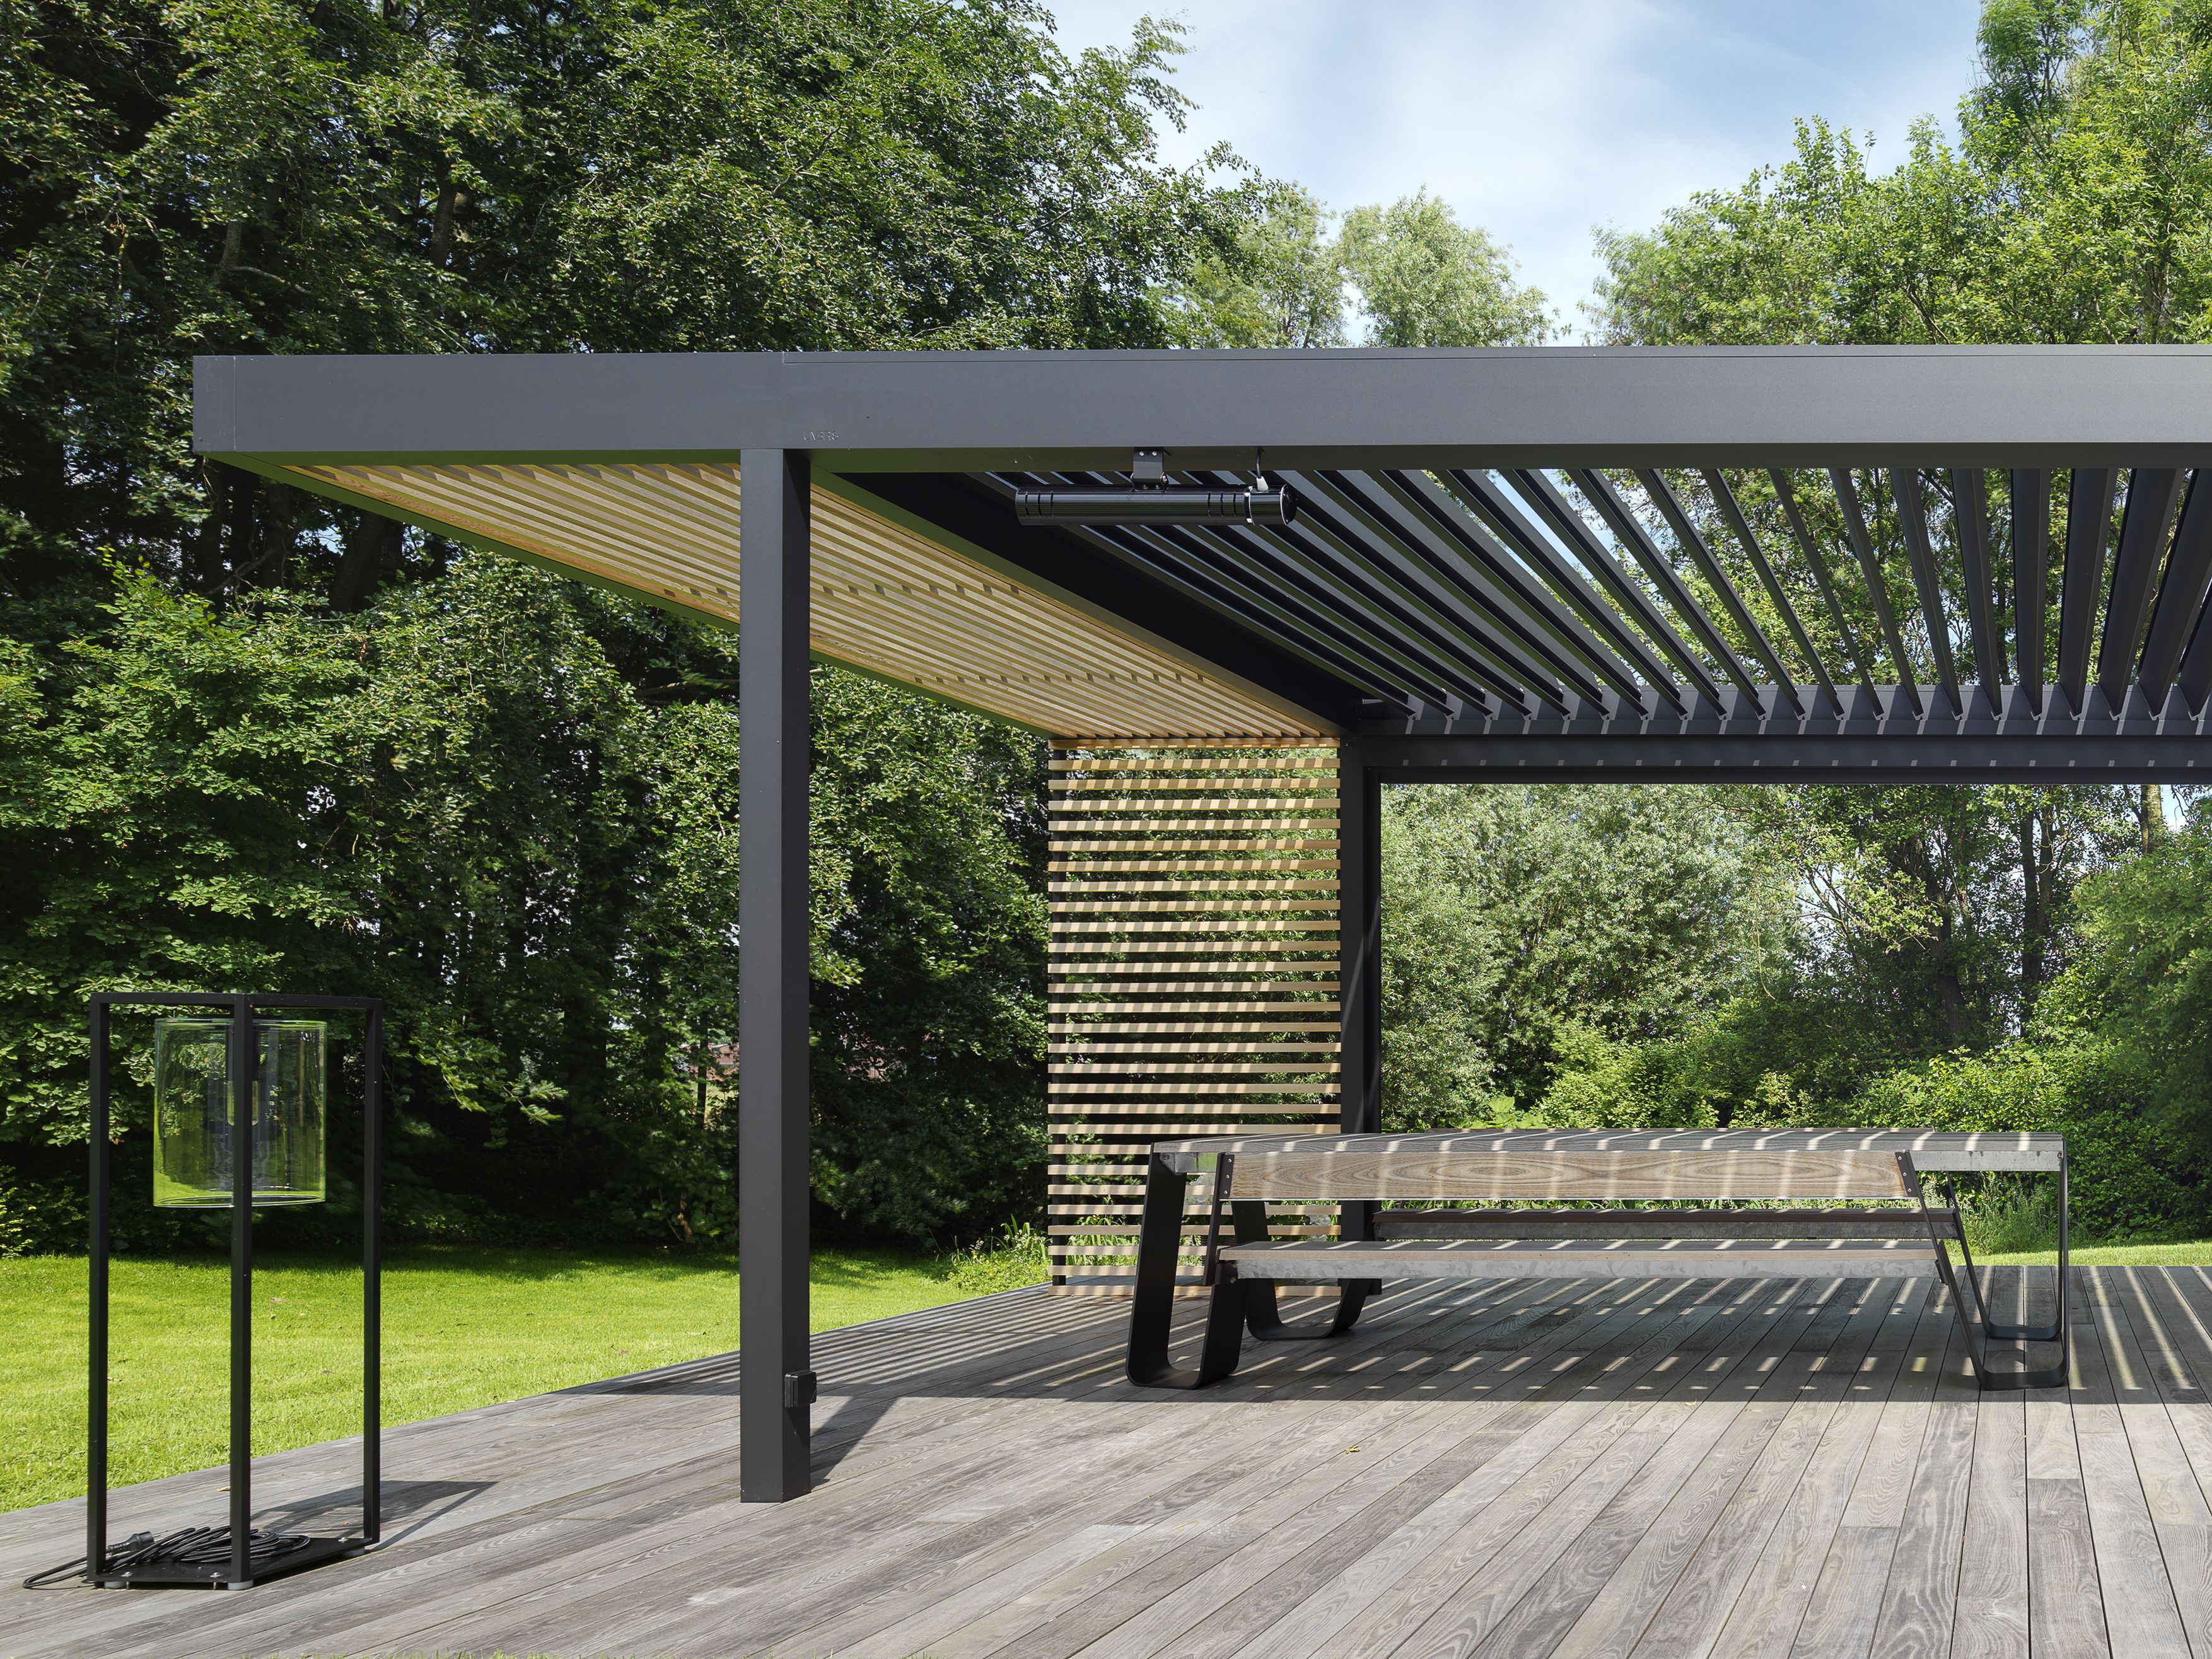 Patio Louvre Roof Cole Road Iq Outdoor Living In 2020 Outdoor Pergola Pergola Plans Pergola Patio